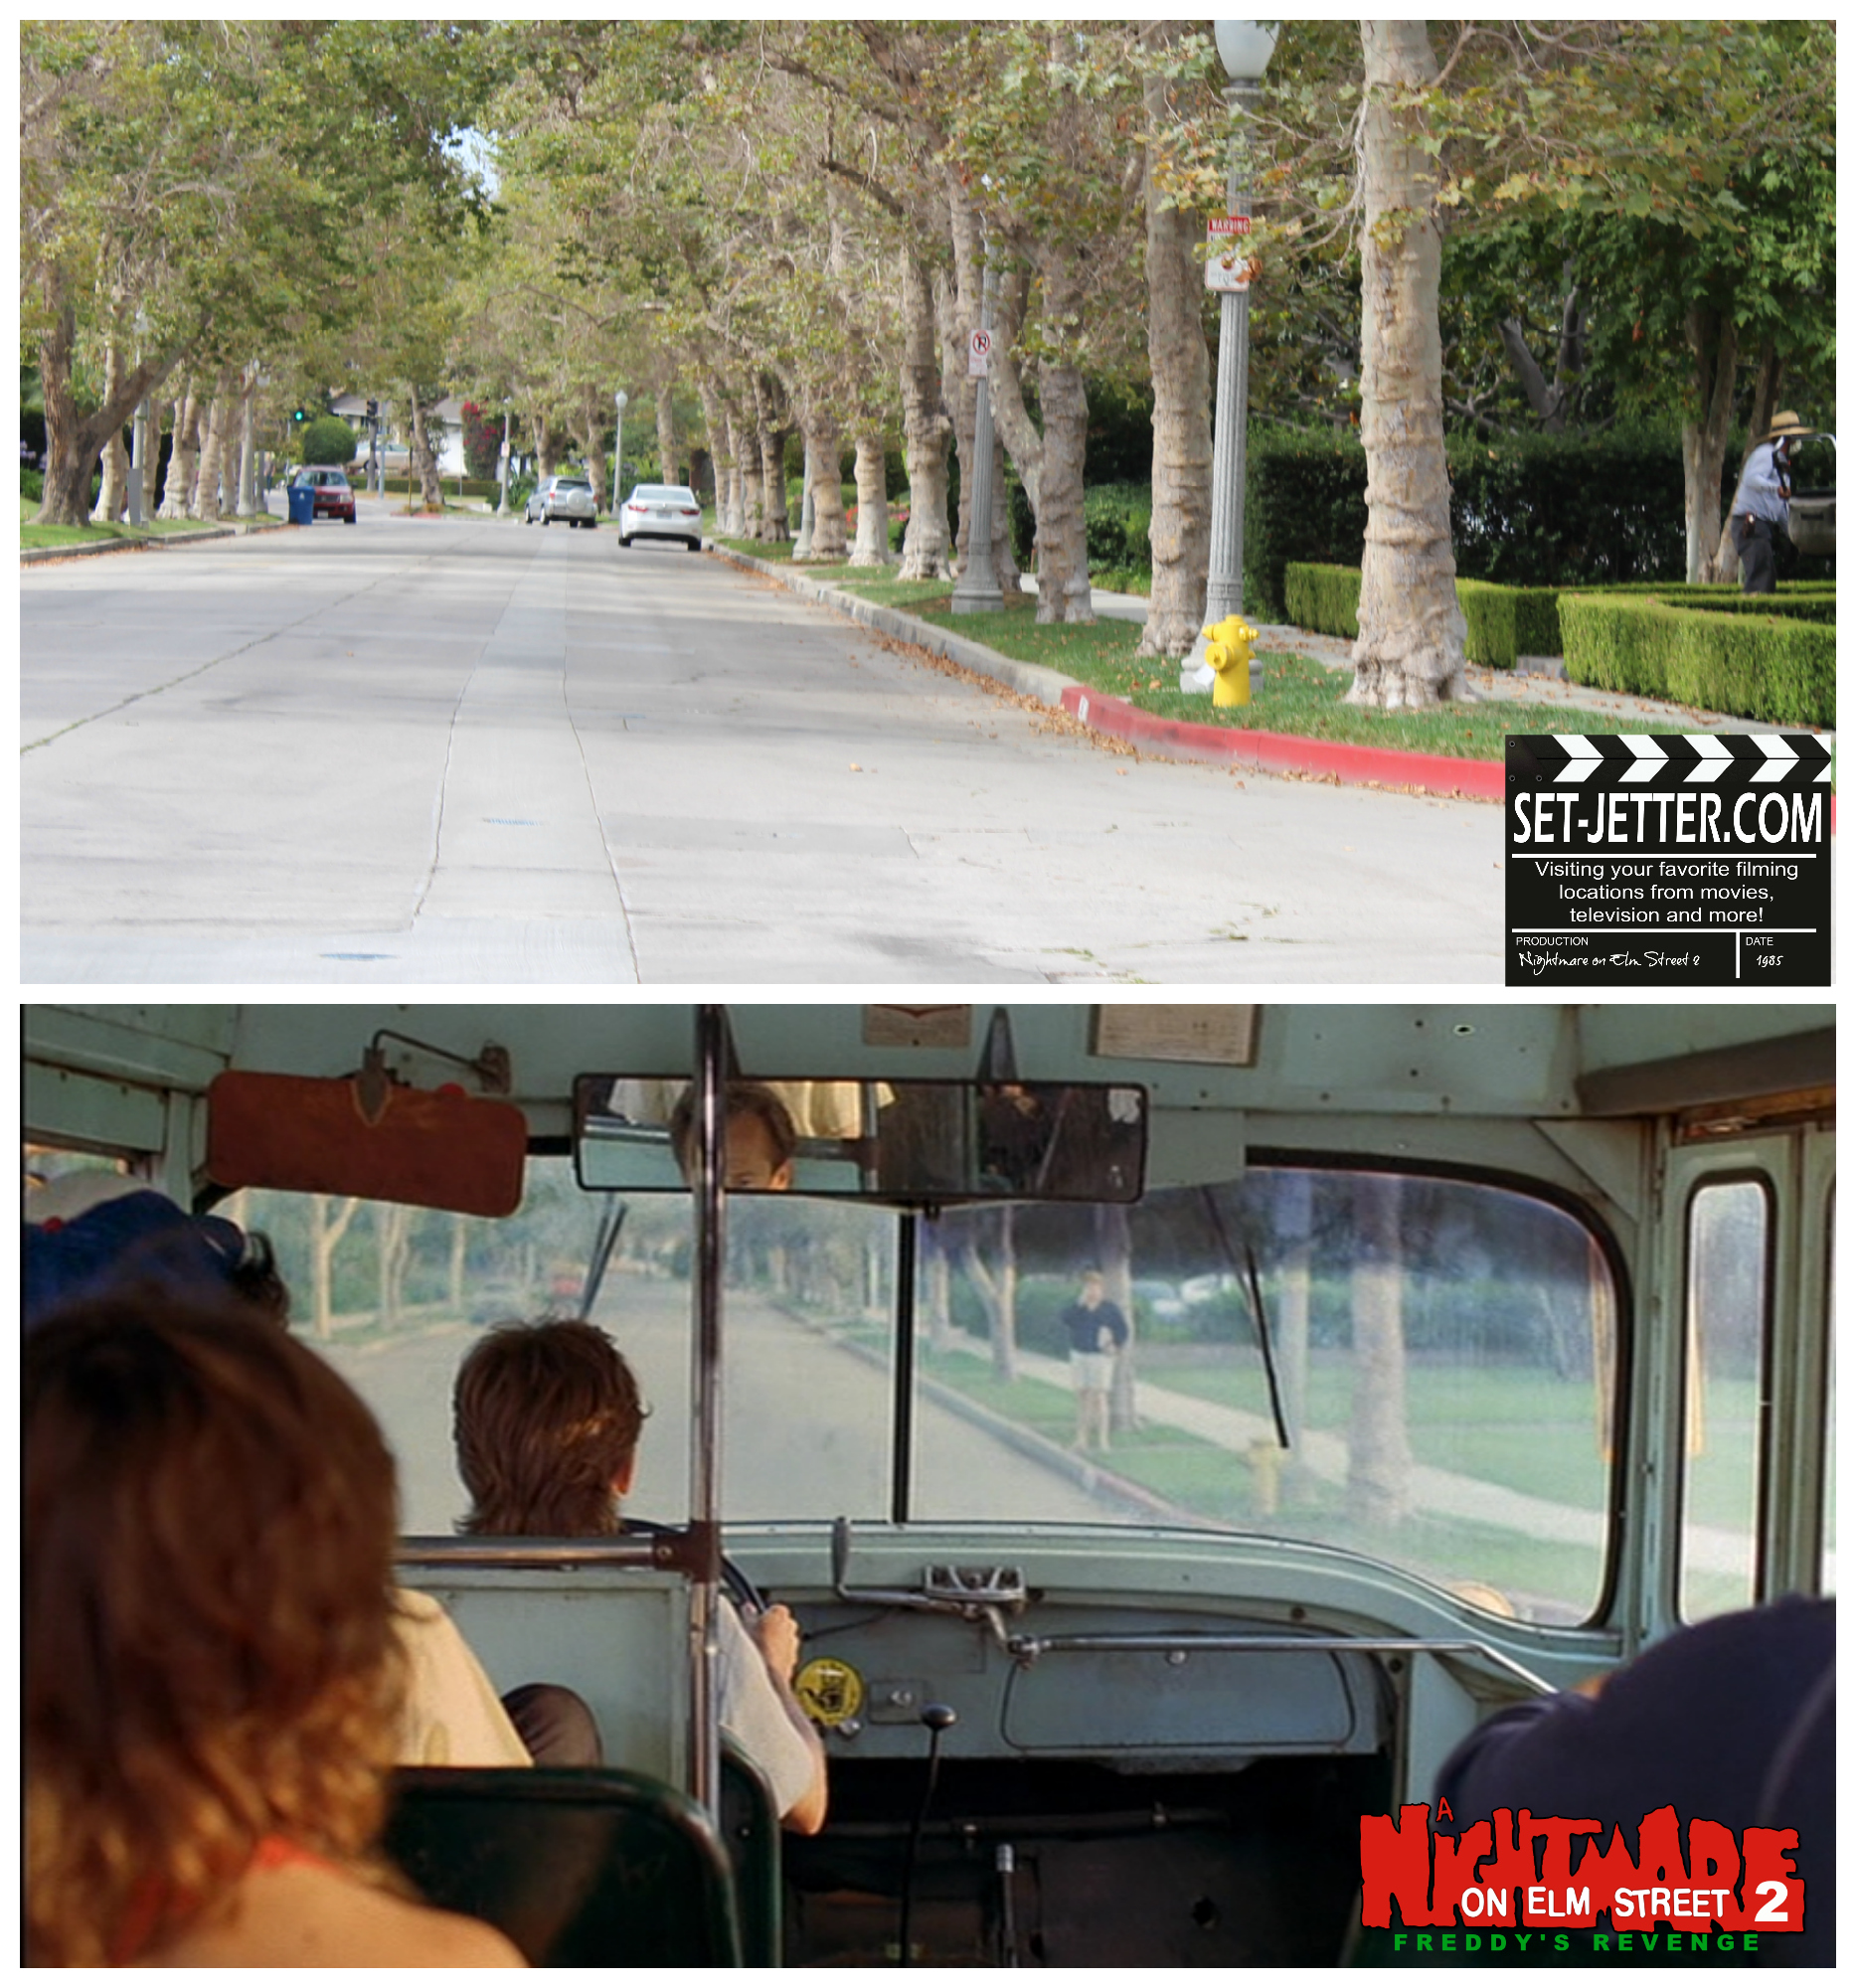 Nightmare on Elm Street Part 2 comparison 26.jpg